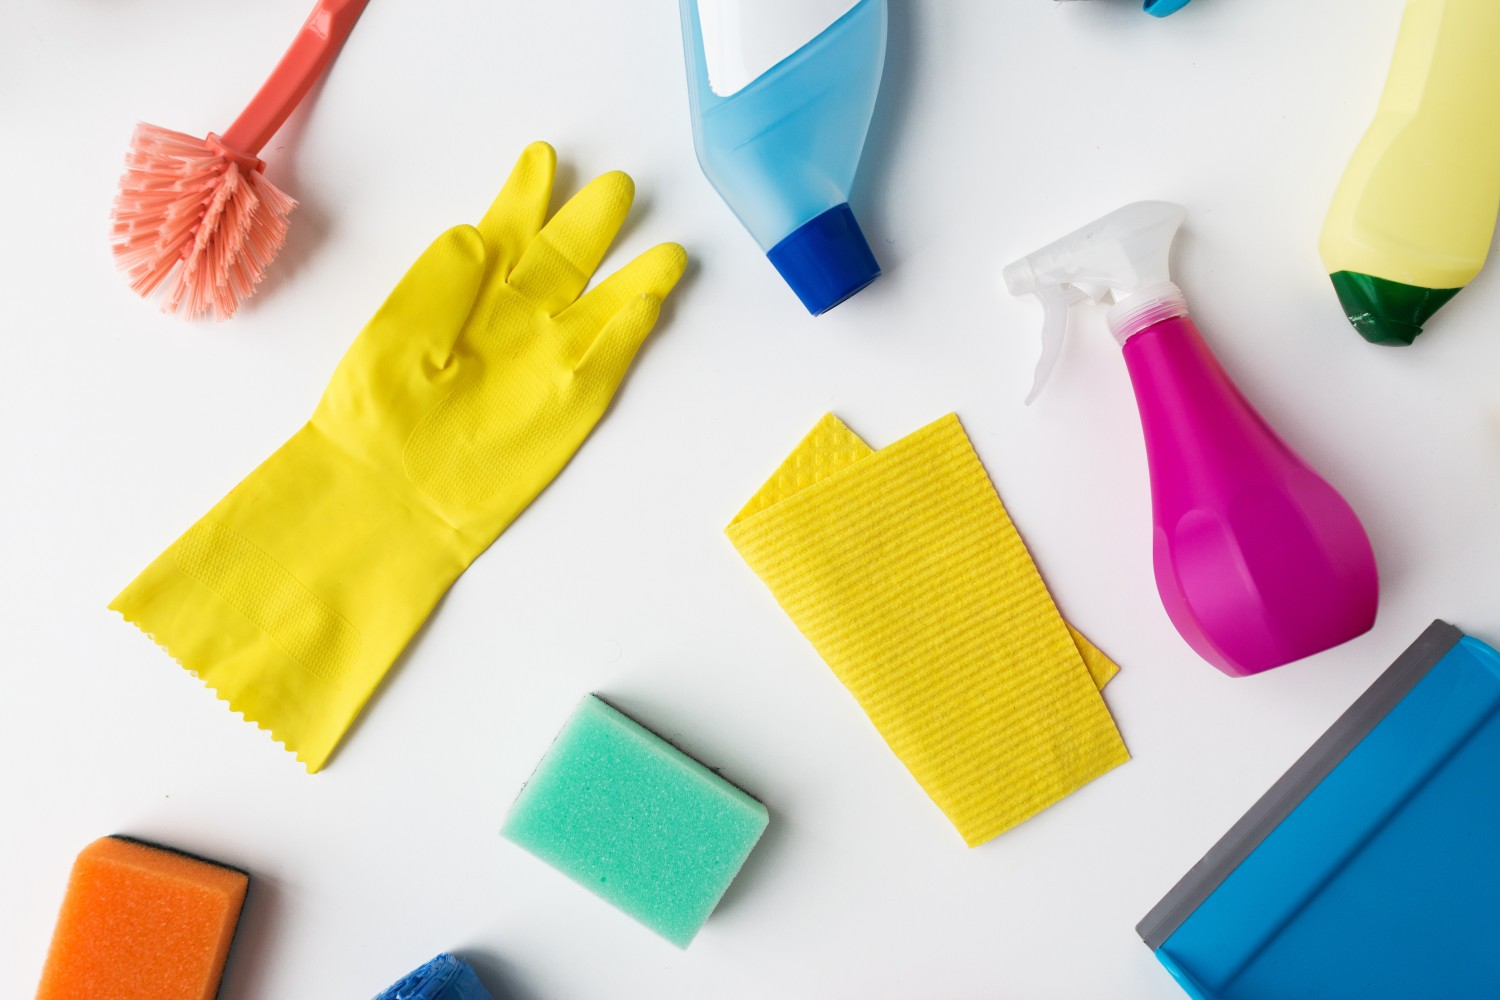 A selection of cleaning products